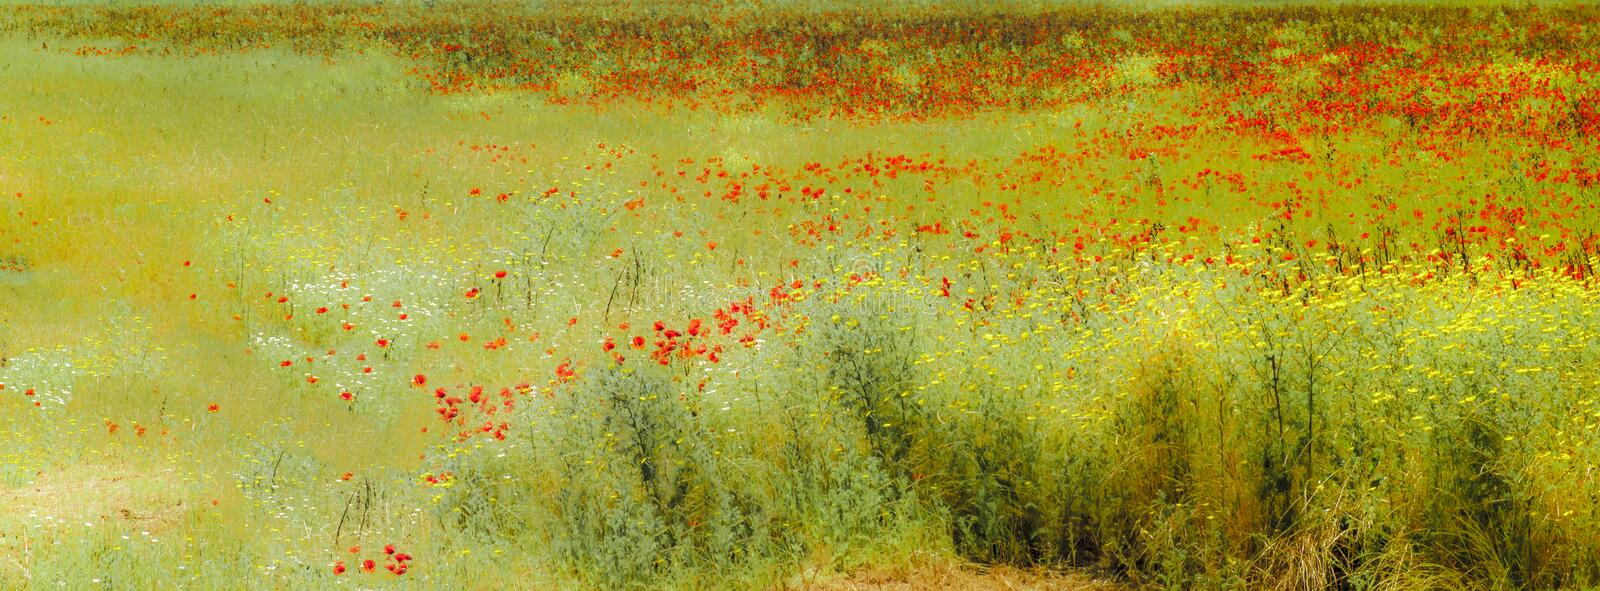 Poppies on summer meadow stock photo